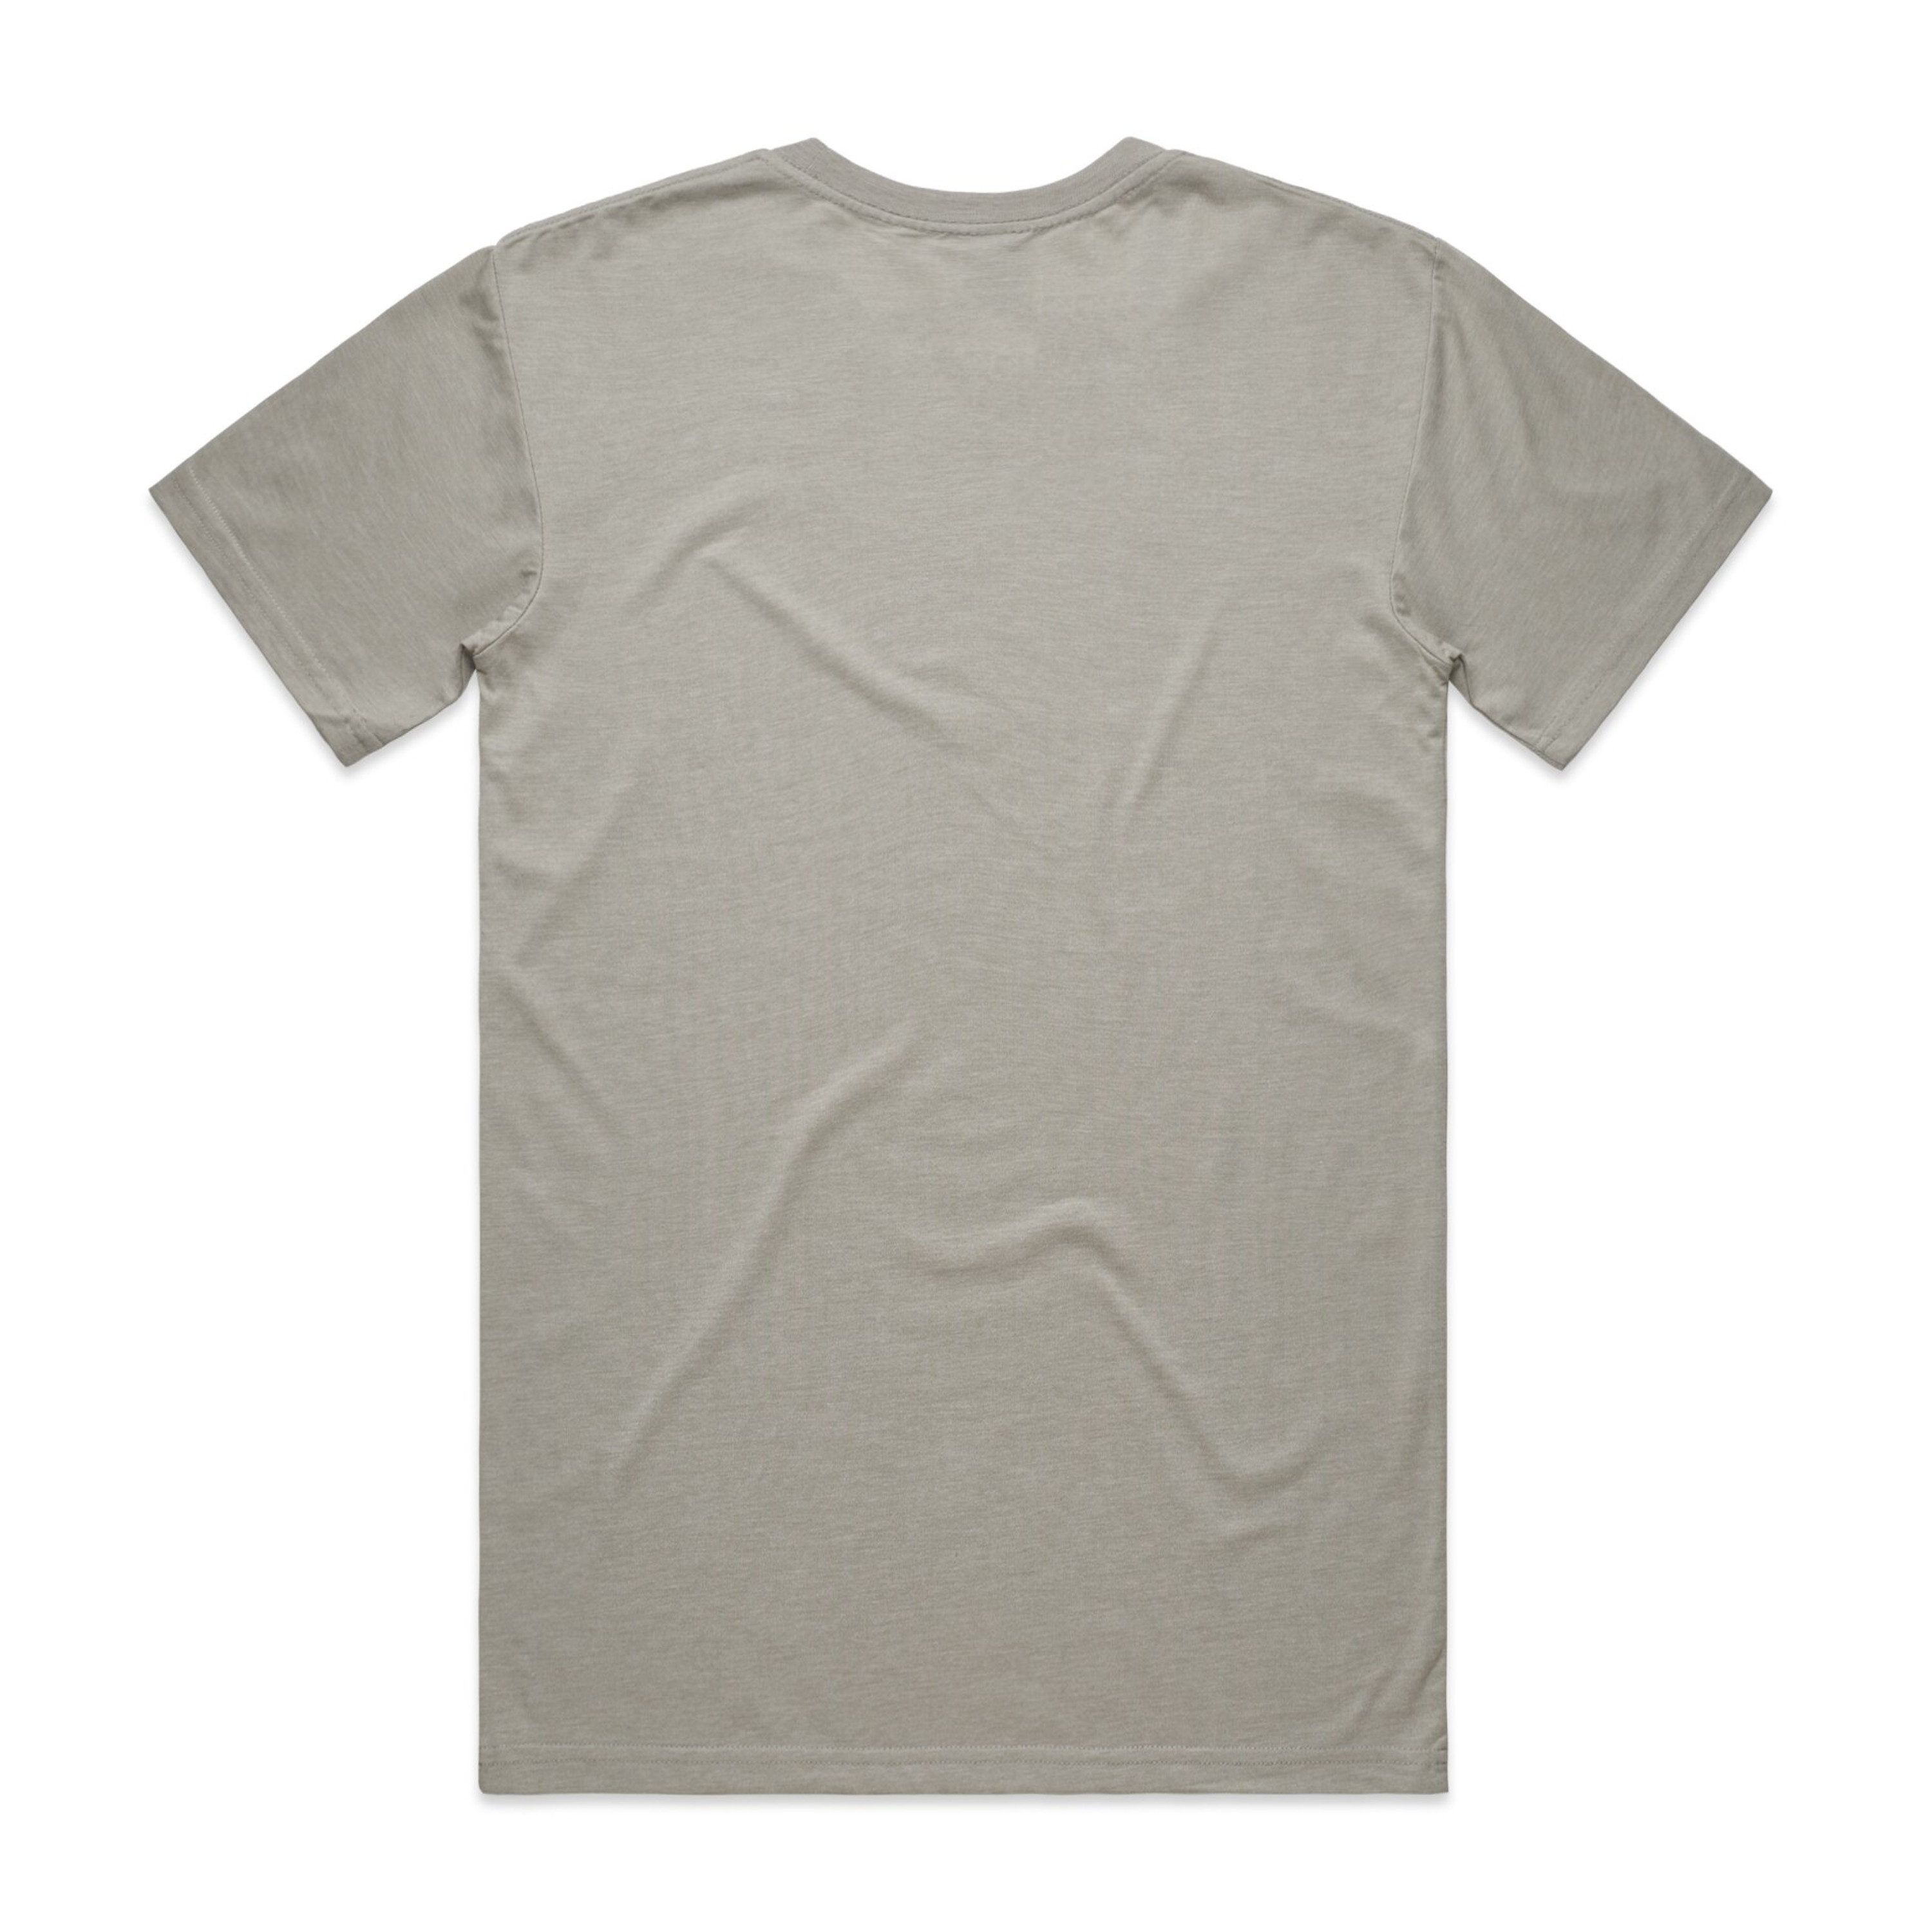 LIGHT GREY - BACK